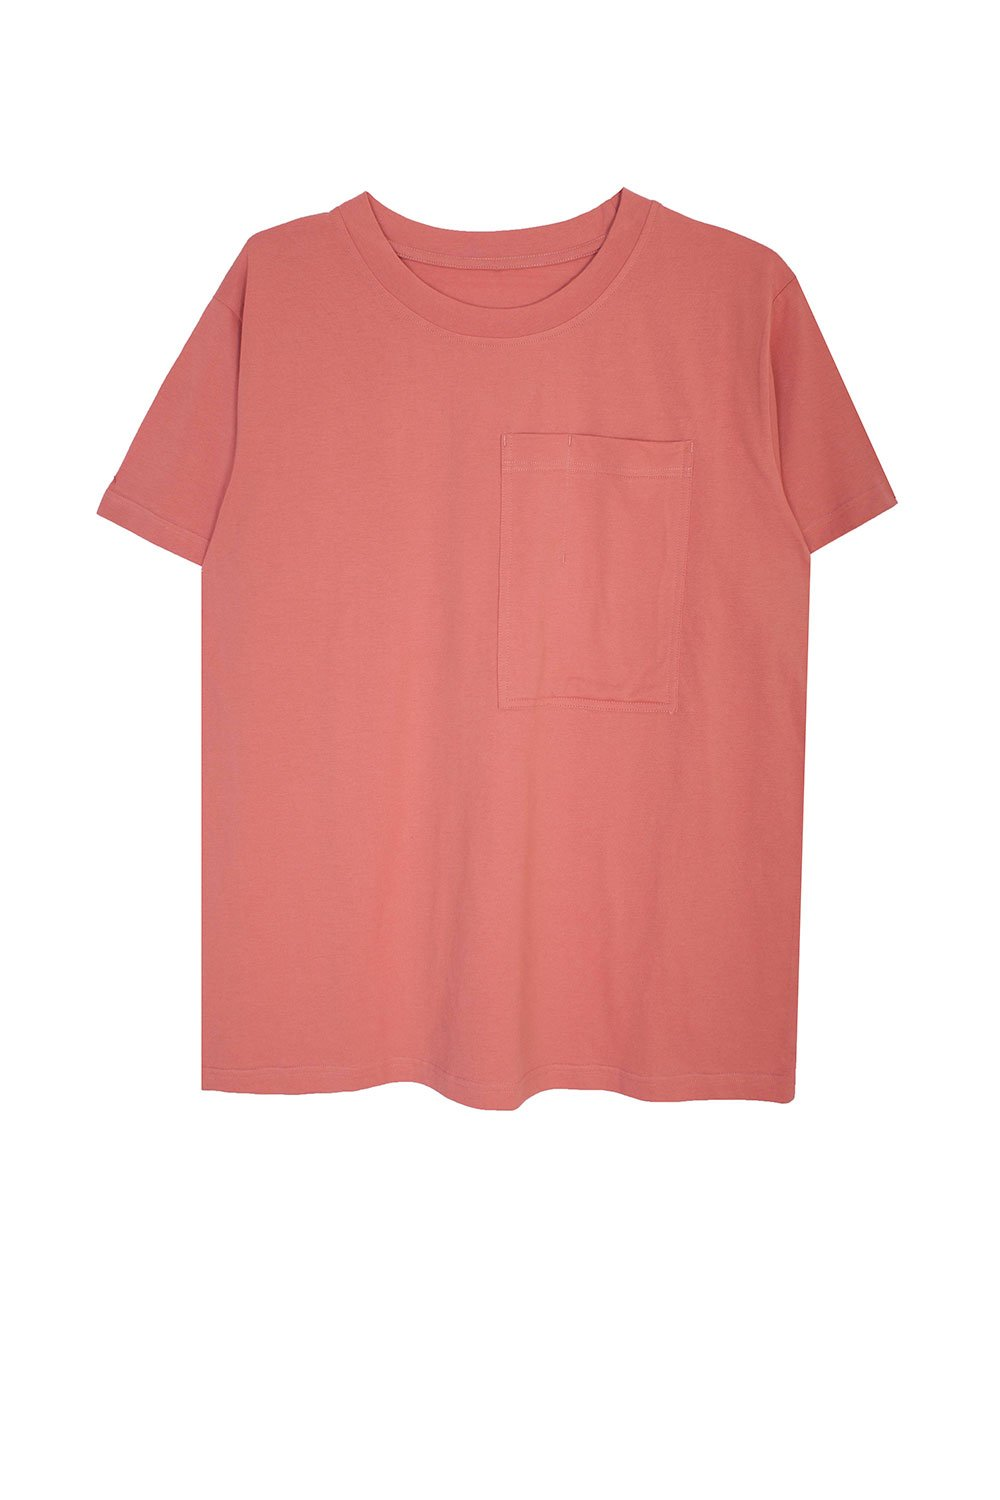 L F Markey - Nullo Tee Dirty Pink